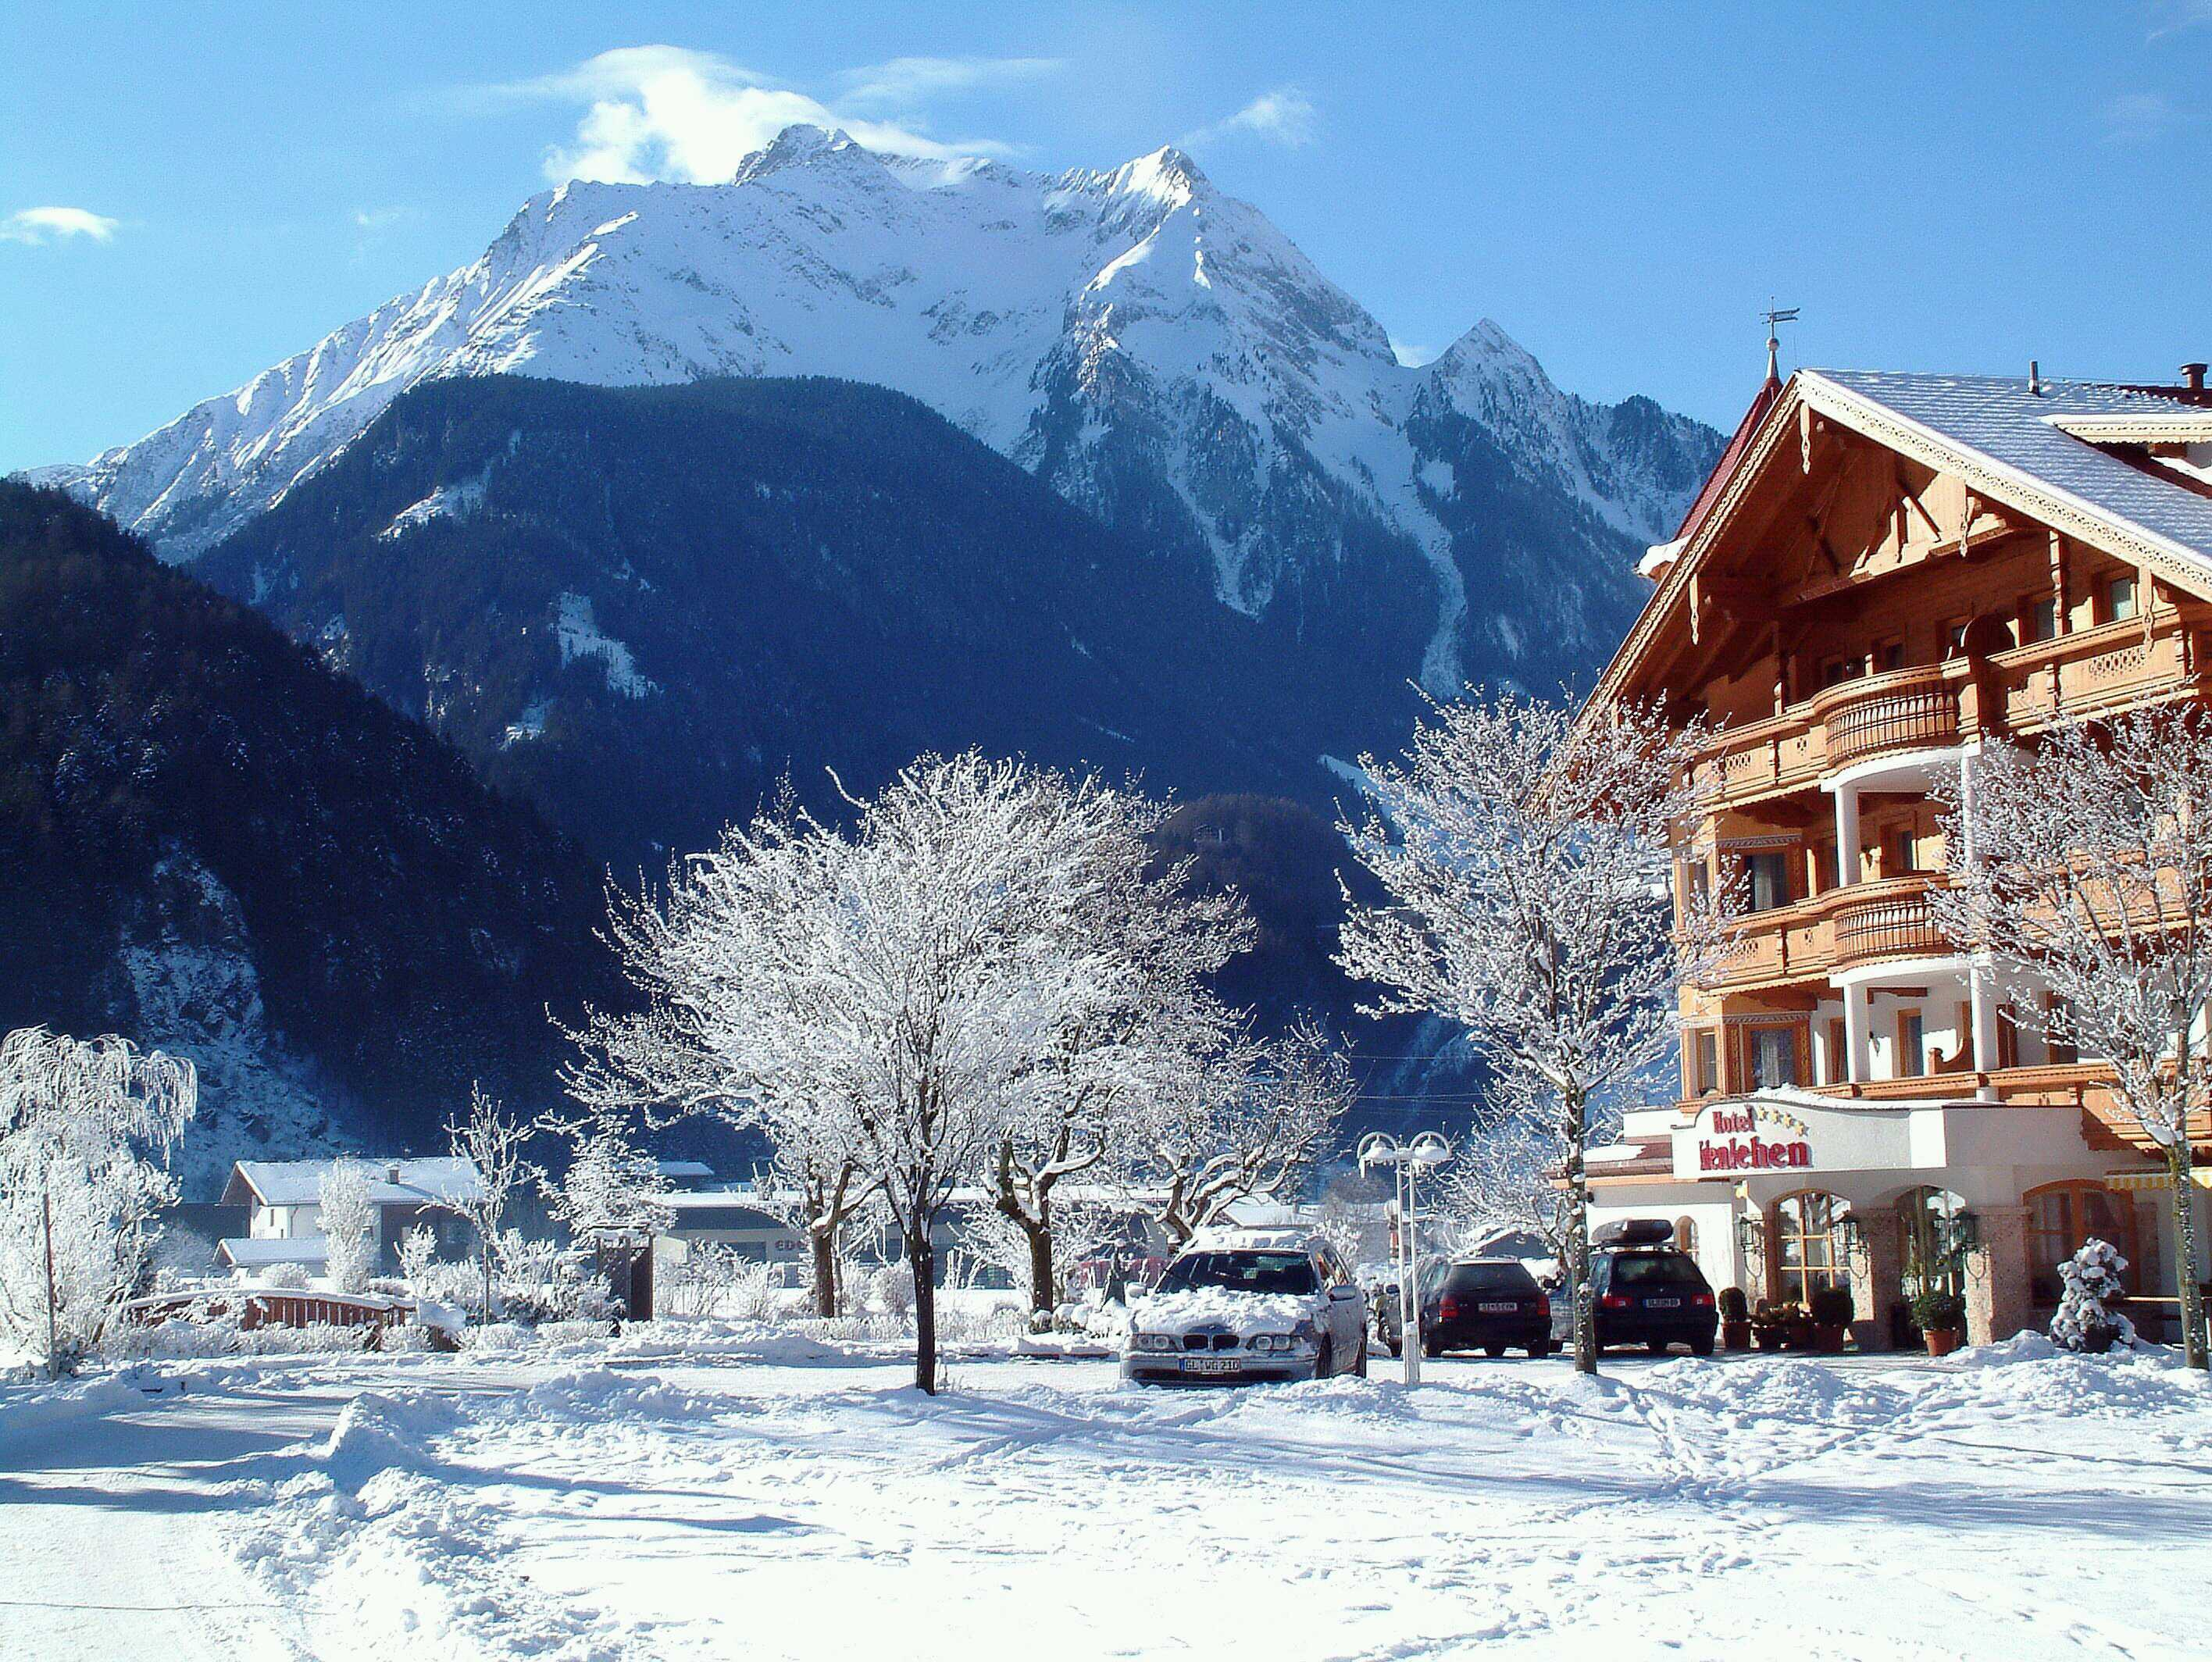 ski resort of Mayrhofen Austria wallpapers and images   wallpapers 2832x2128